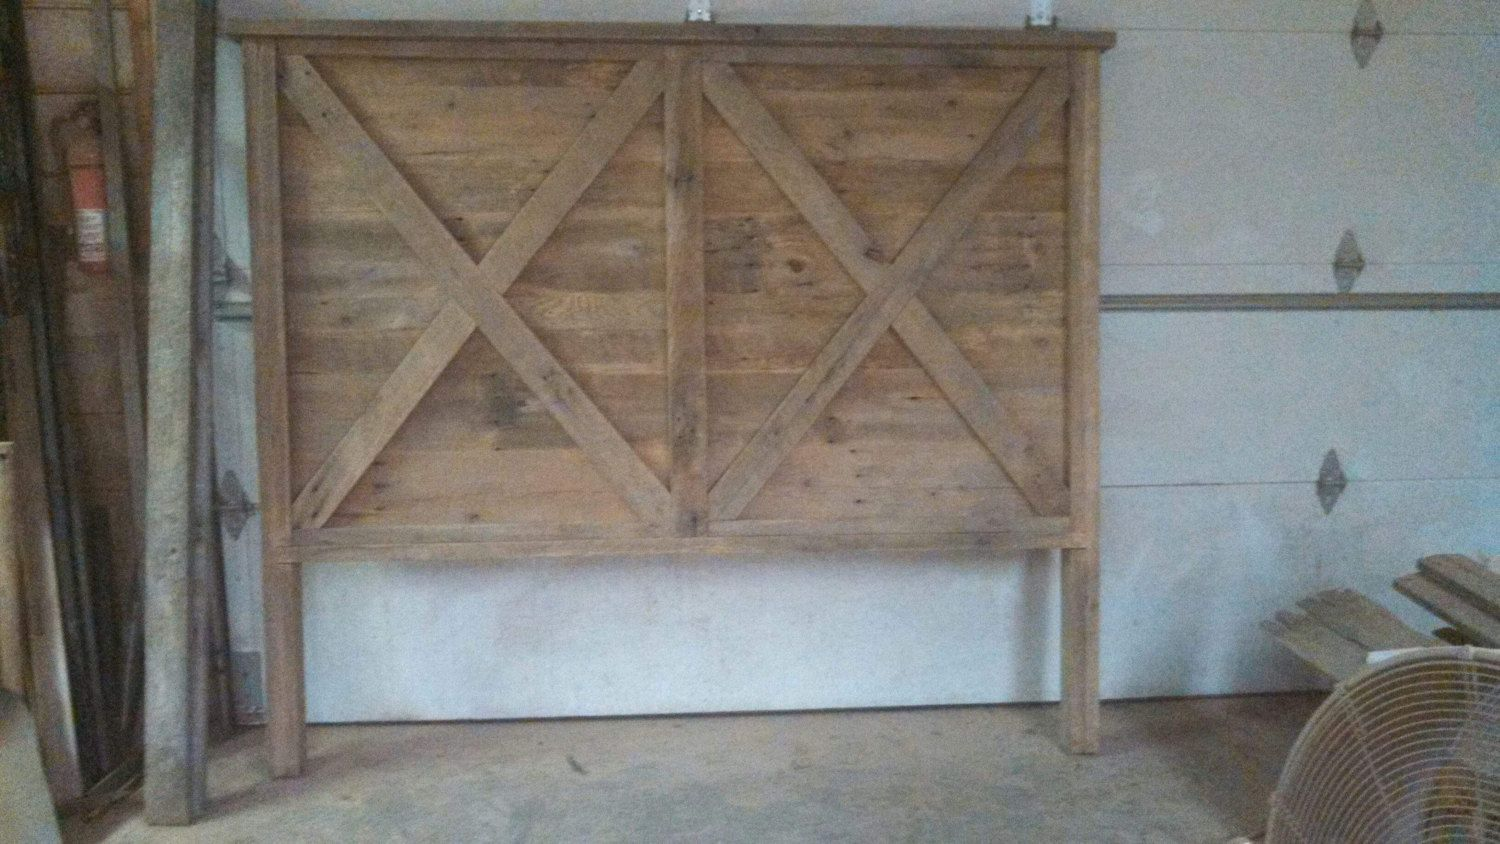 Husbands next project lol :)  Made to Order Rustic and Recliamed Barn Wood King Headboard by timelessjourney on Etsy